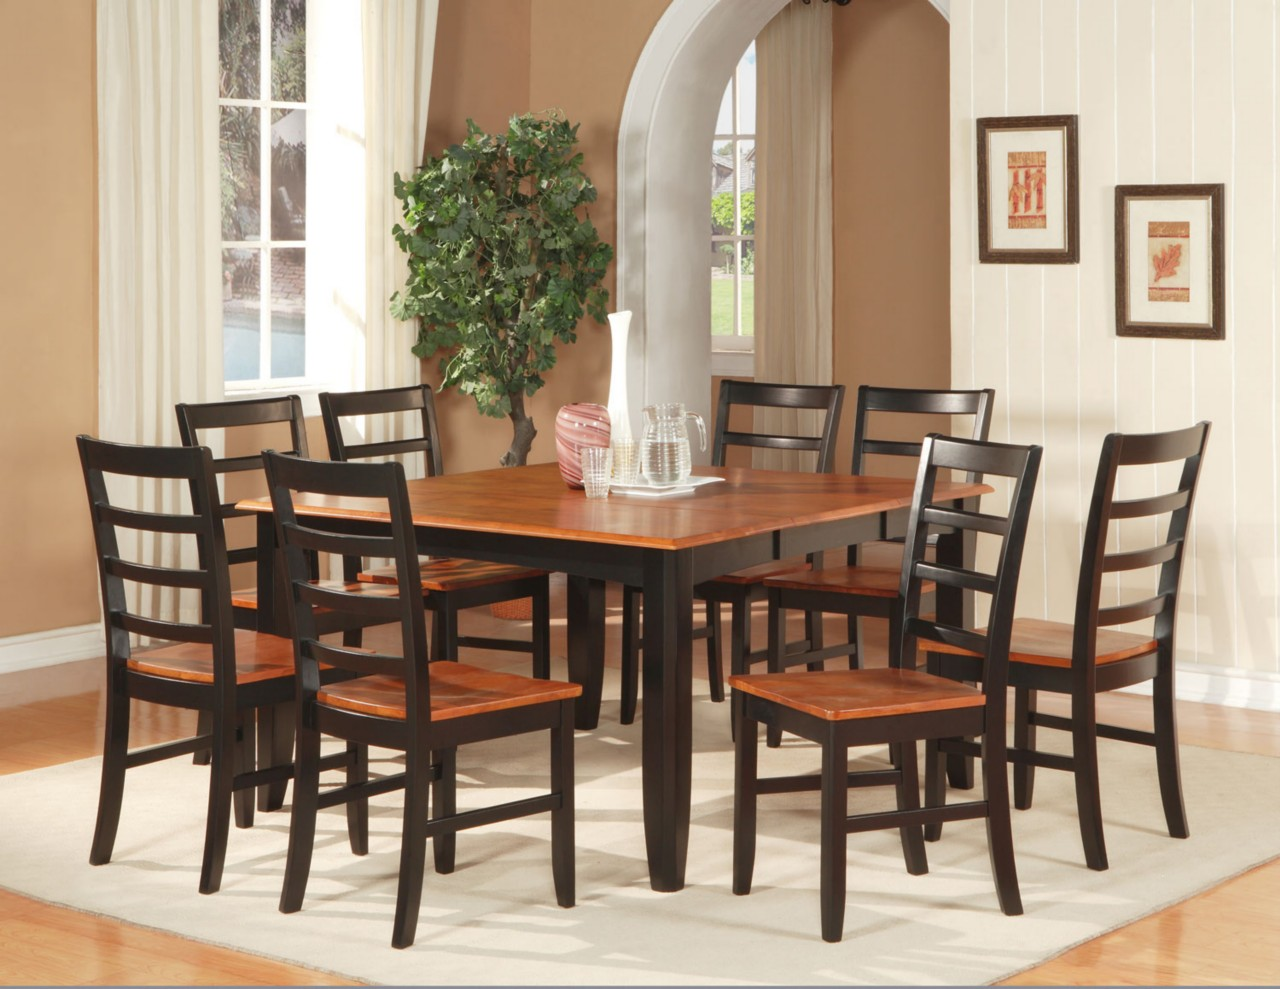 Details About 9 PC SQUARE DINETTE DINING ROOM TABLE SET AND 8 CHAIRS